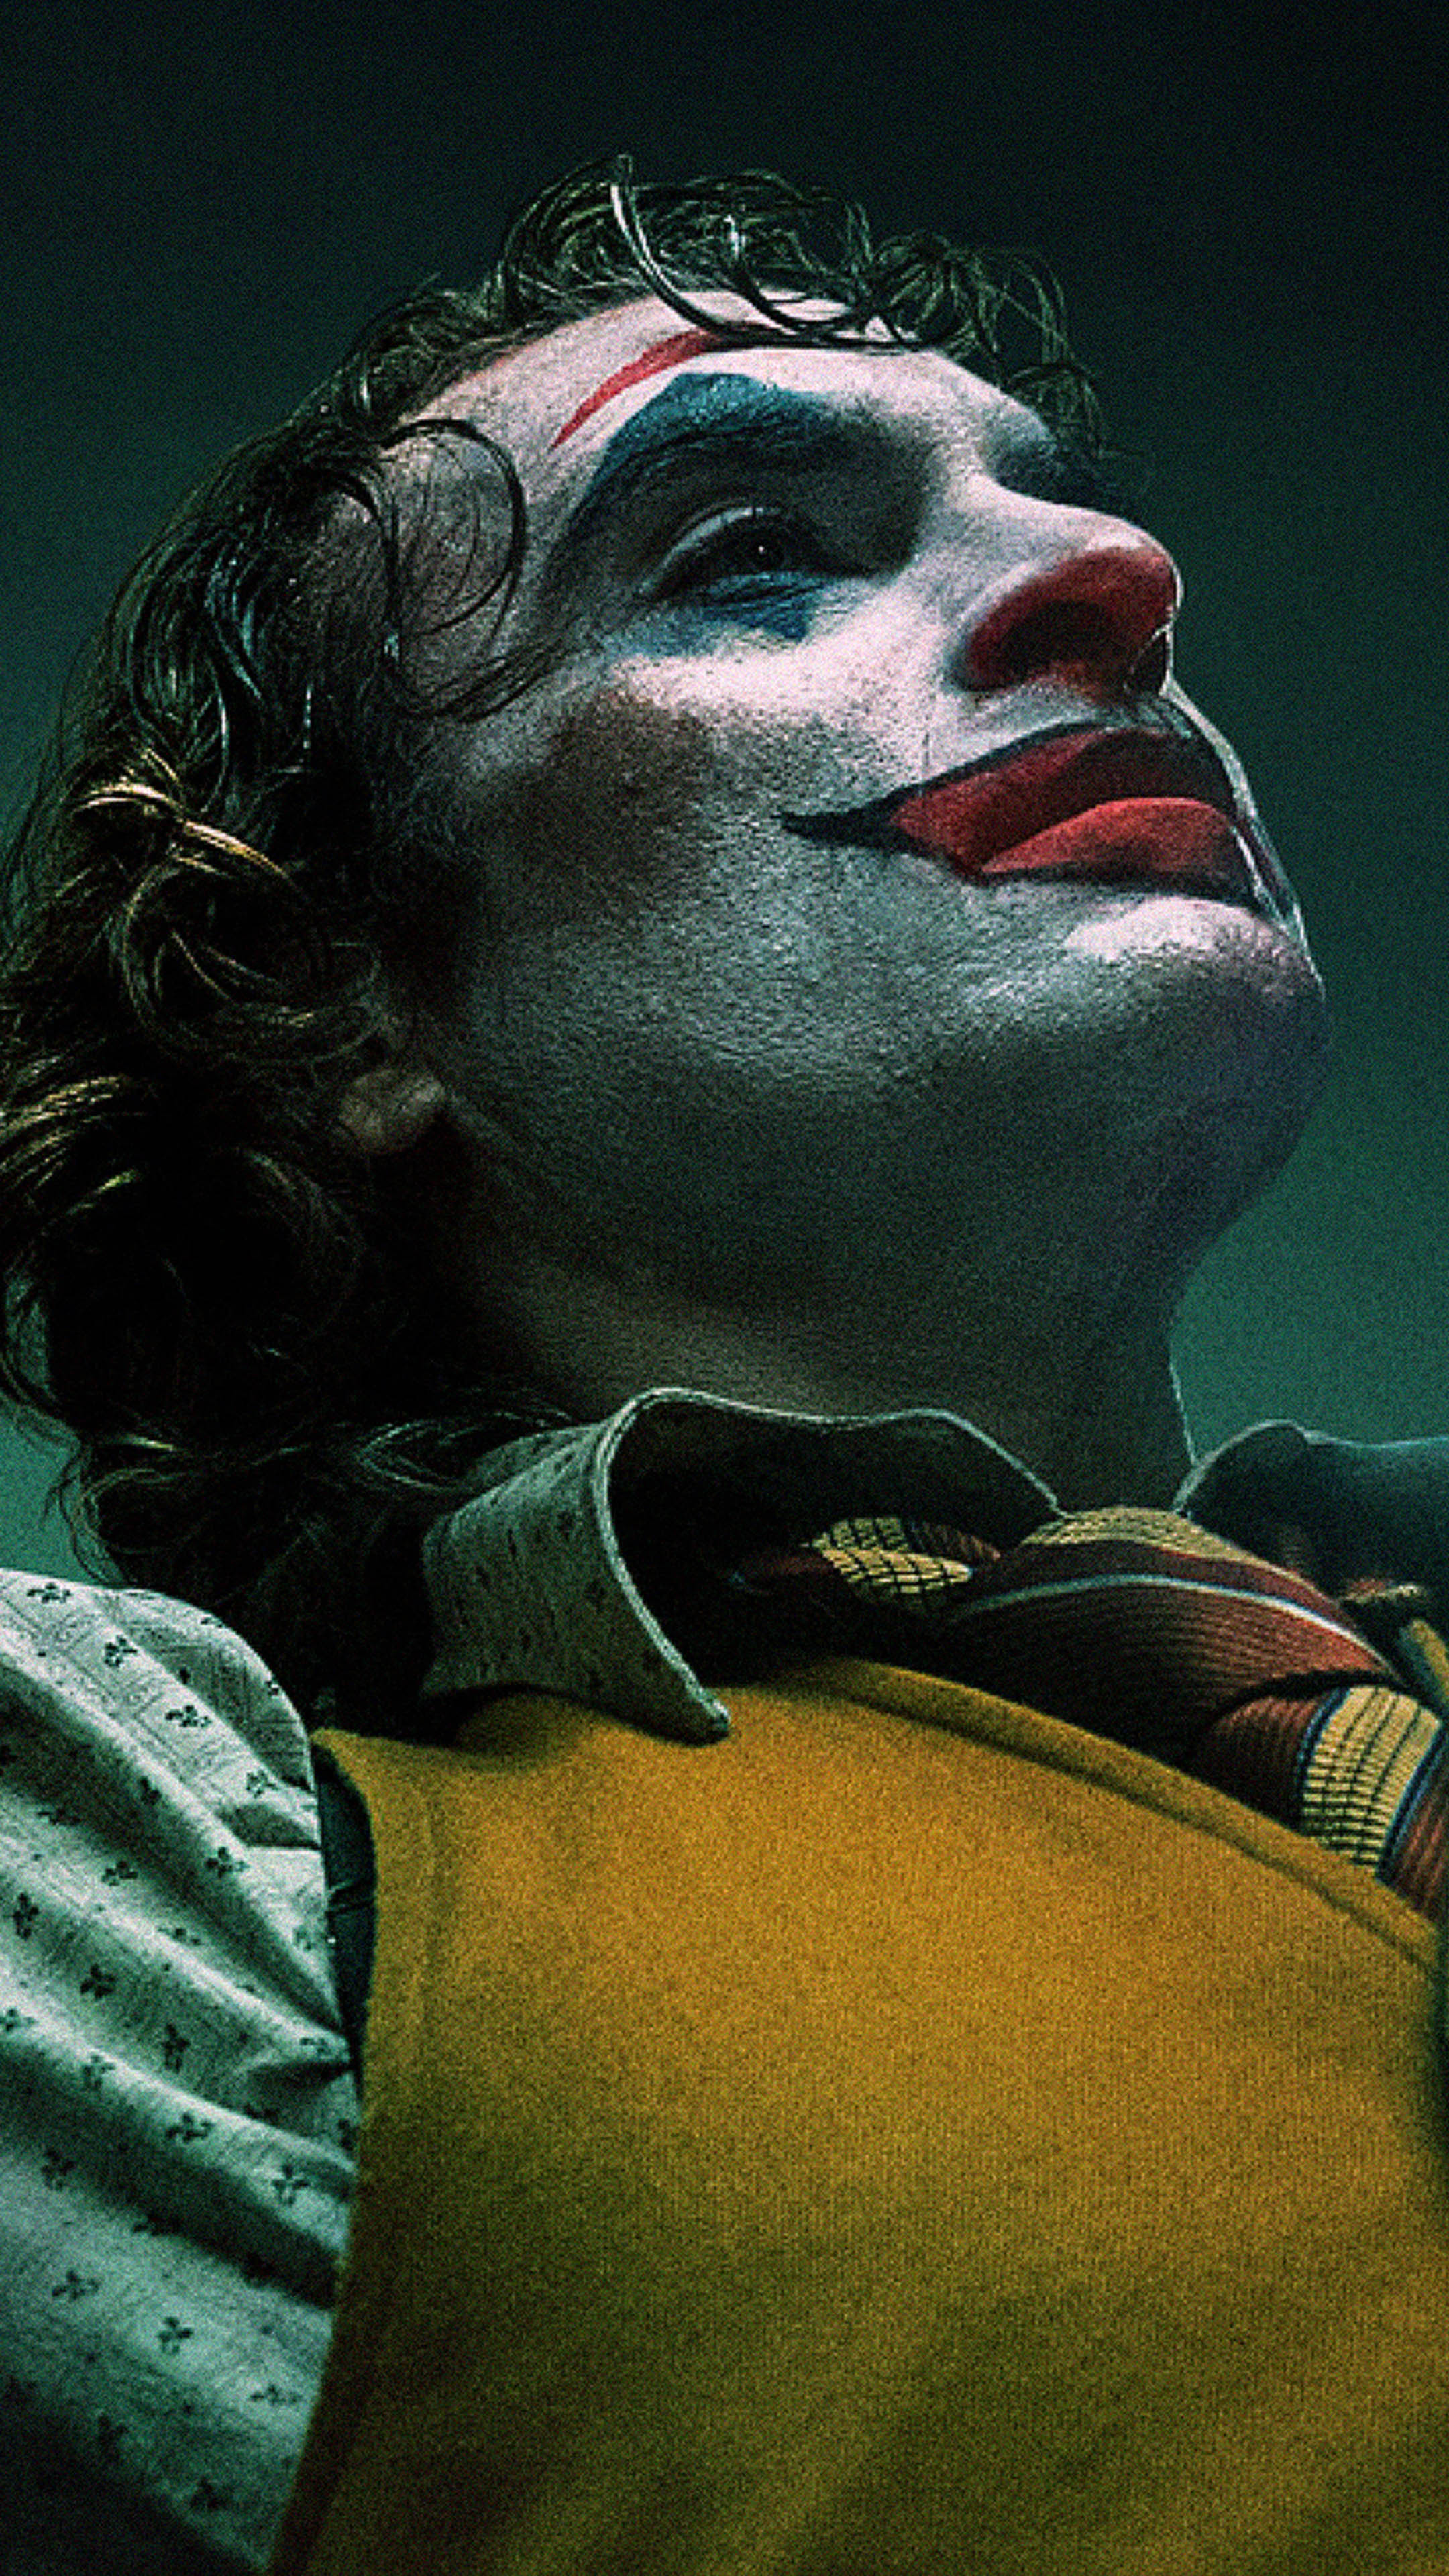 Download Joaquin Phoenix Joker 2019 Movie Free Pure 4k Ultra